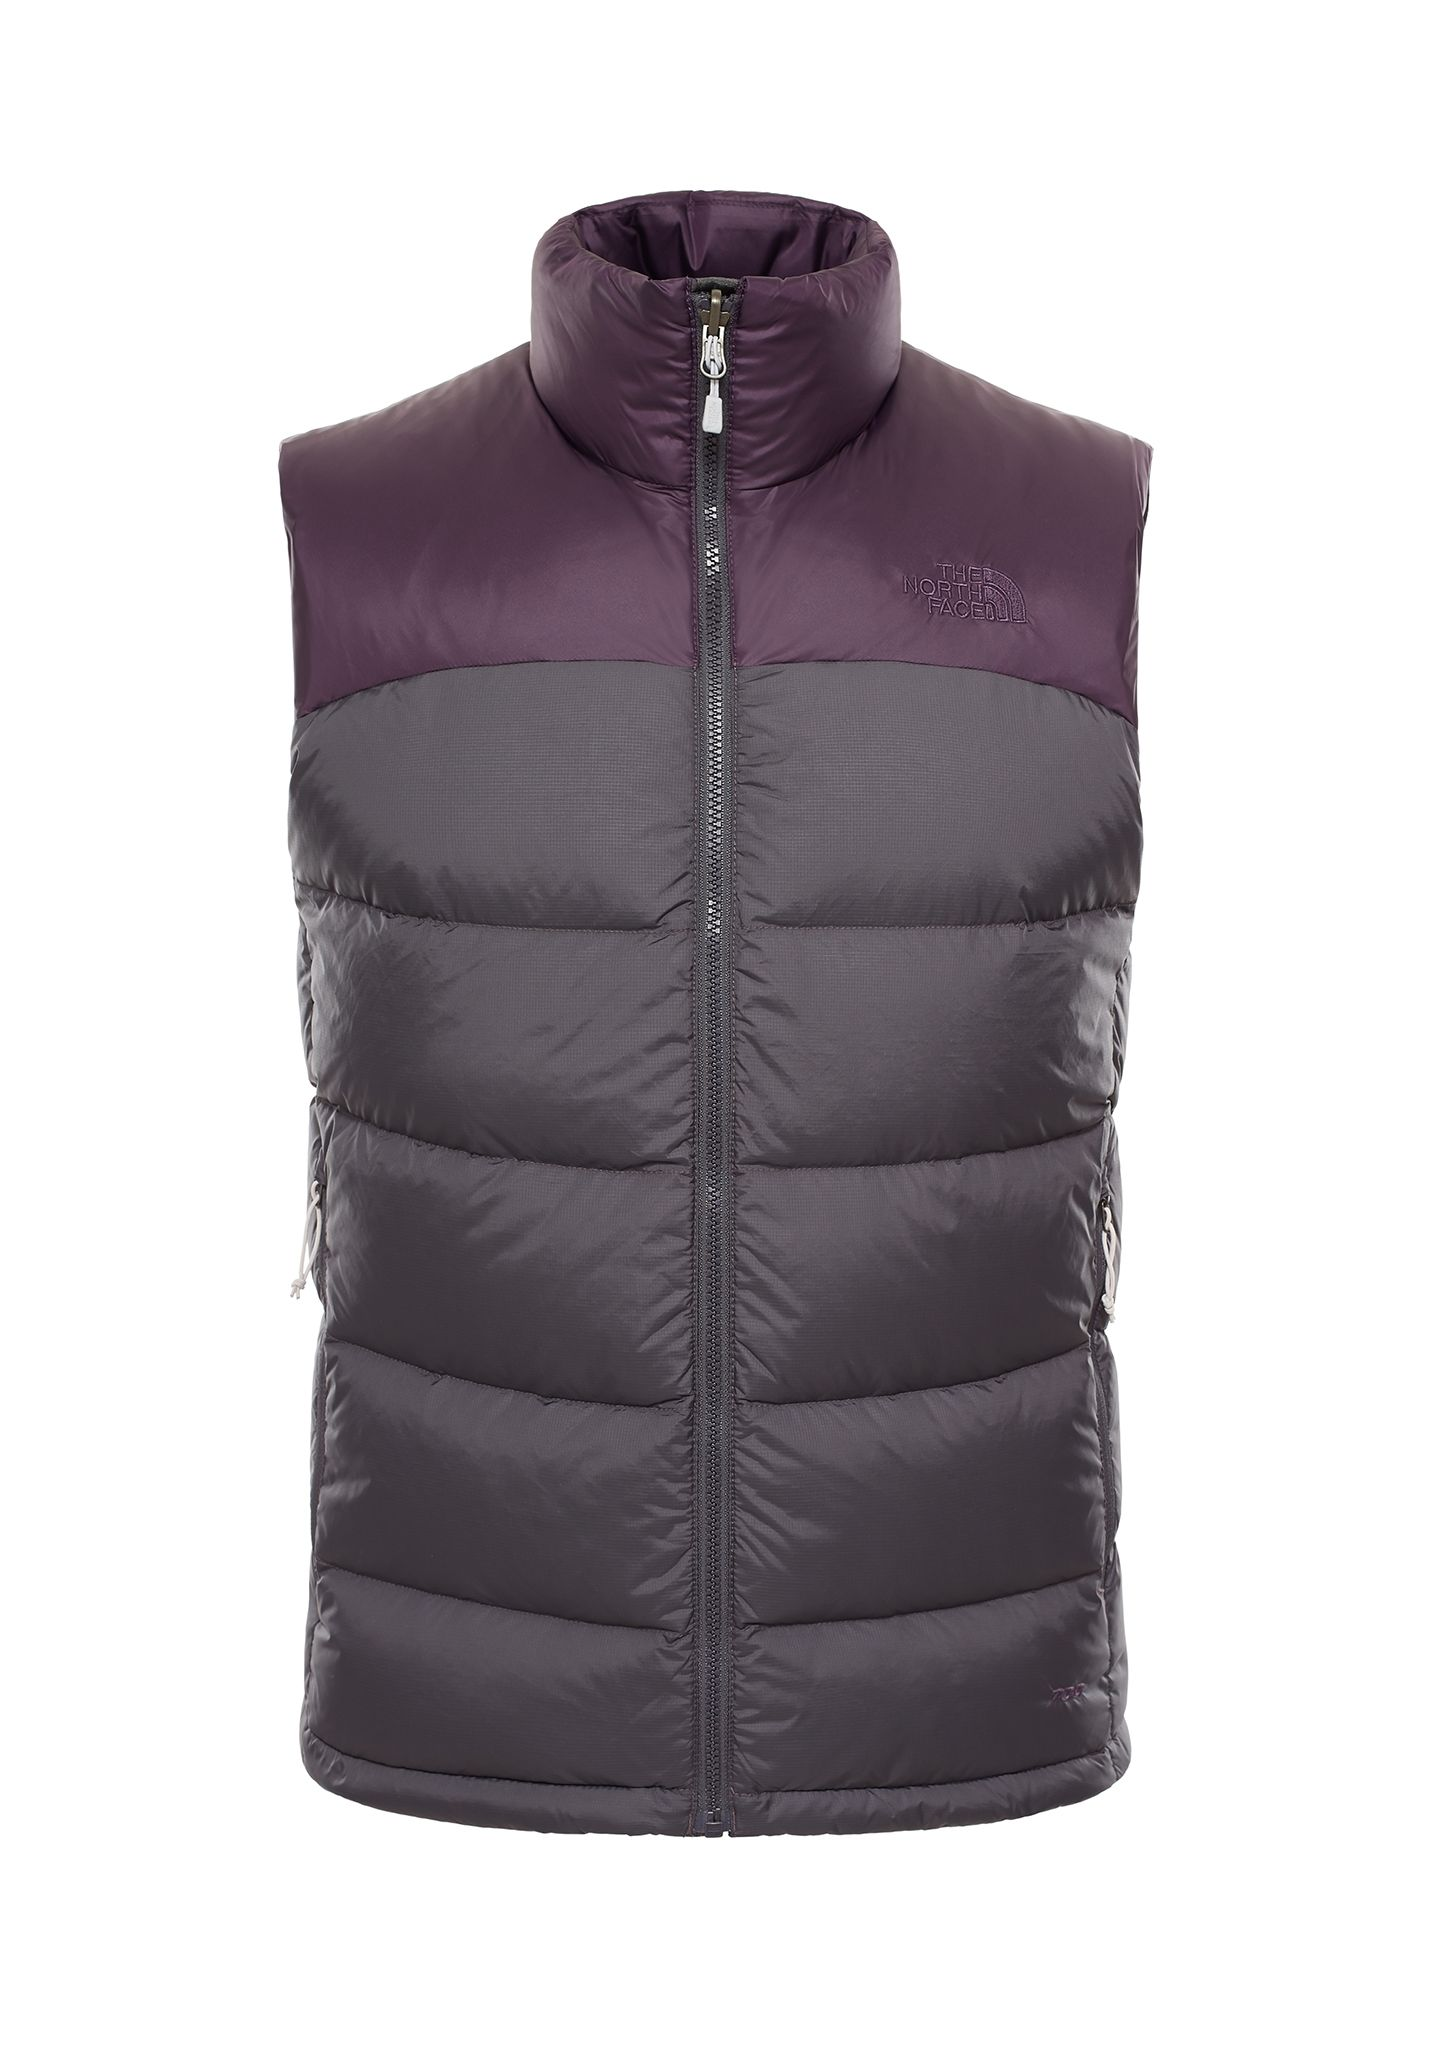 cc910fc61d THE NORTH FACE Nuptse 2 - Outdoor Vest for Men - Grey - Planet Sports